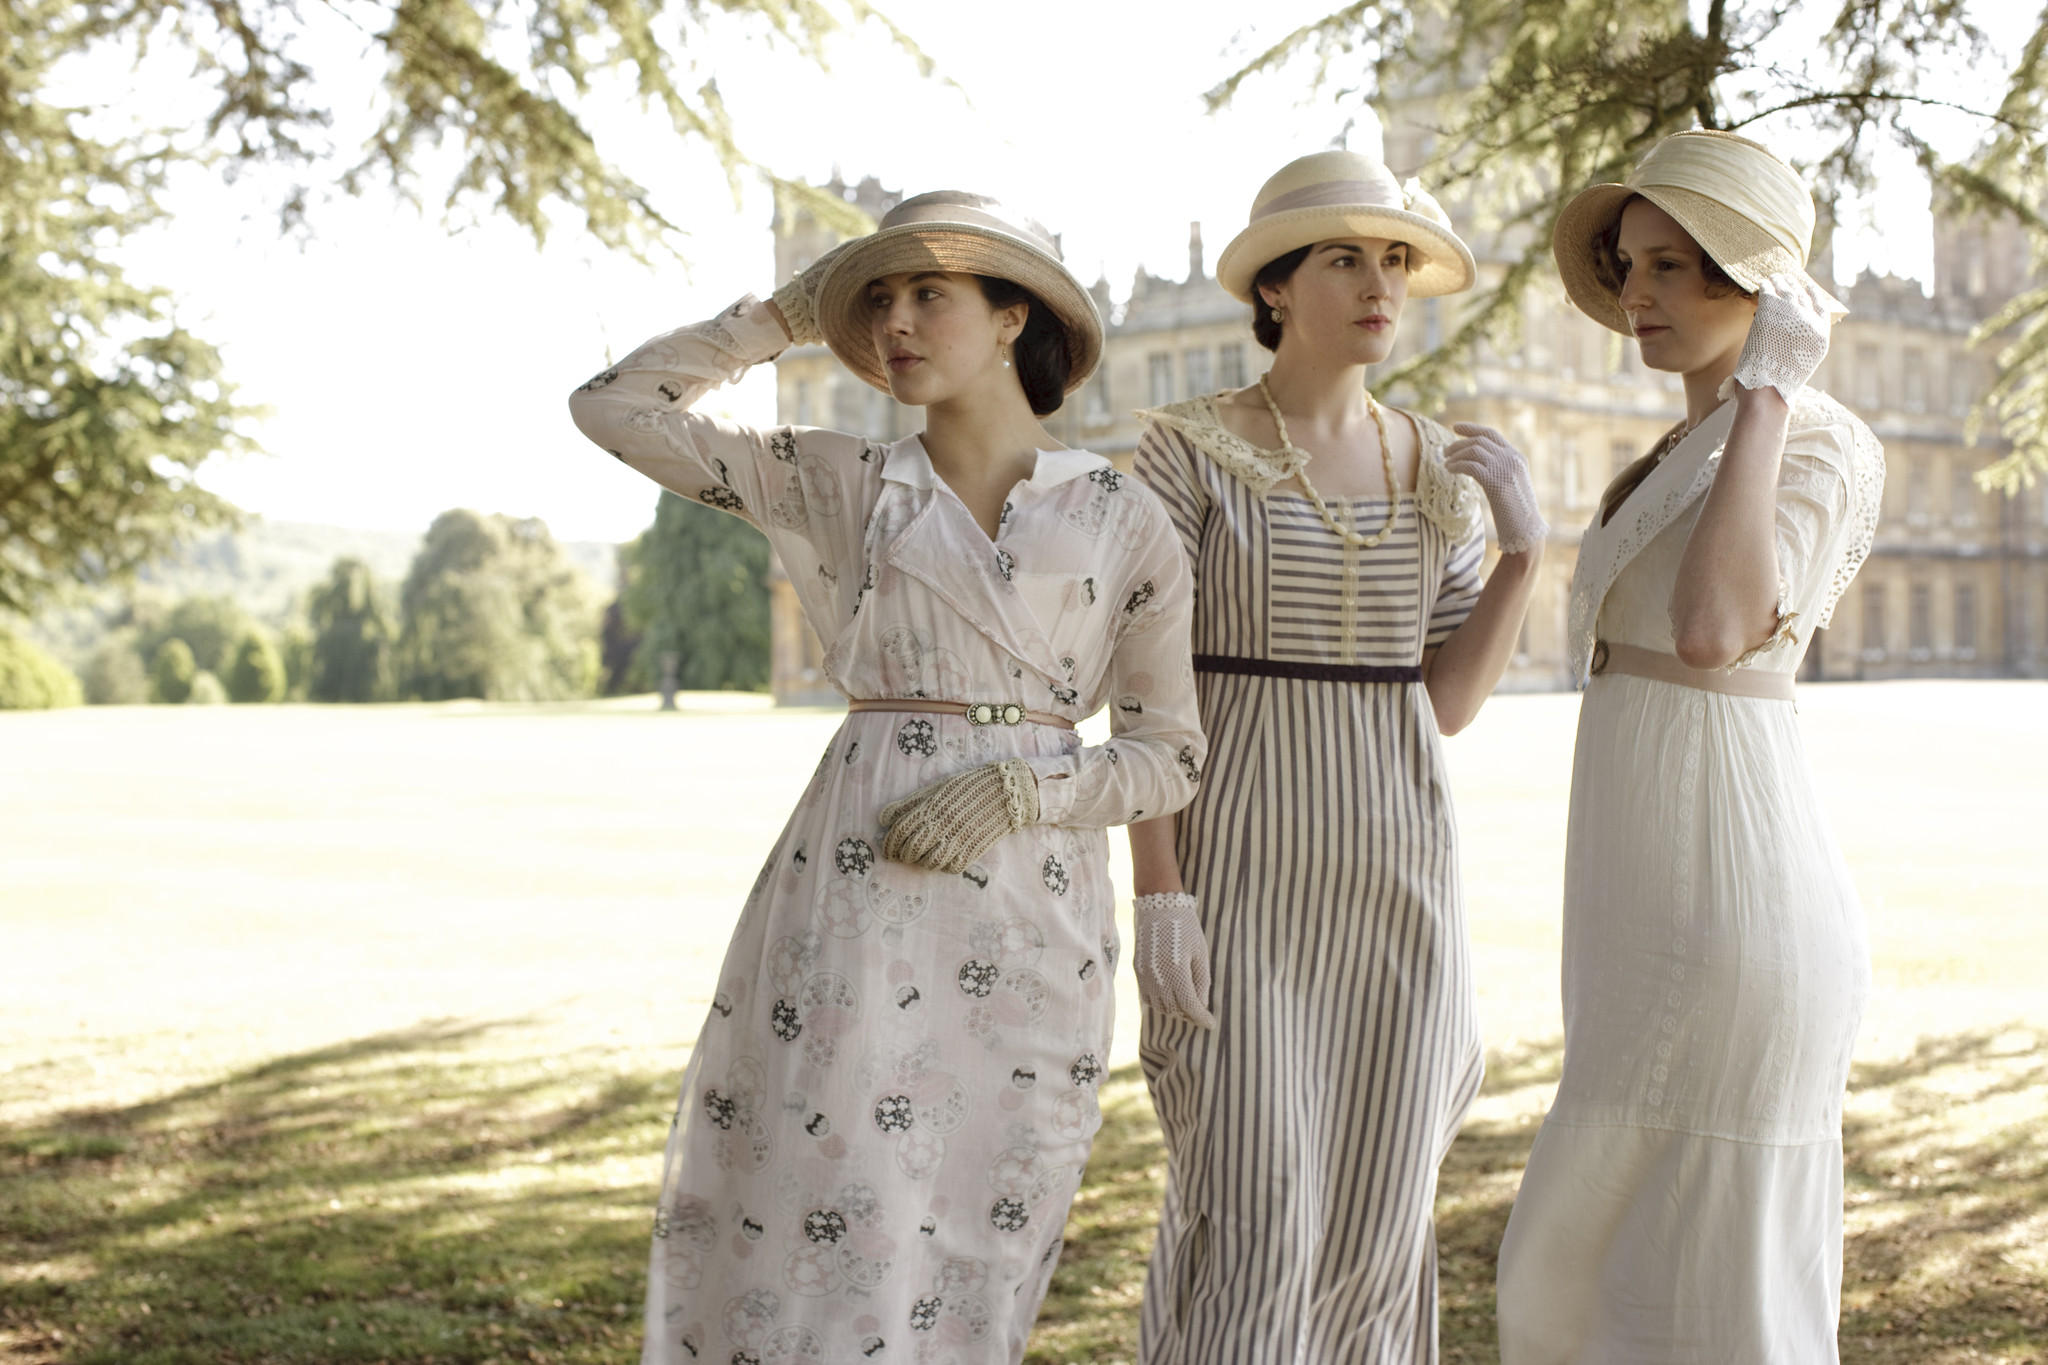 USE-downton-costumes-20140220-001